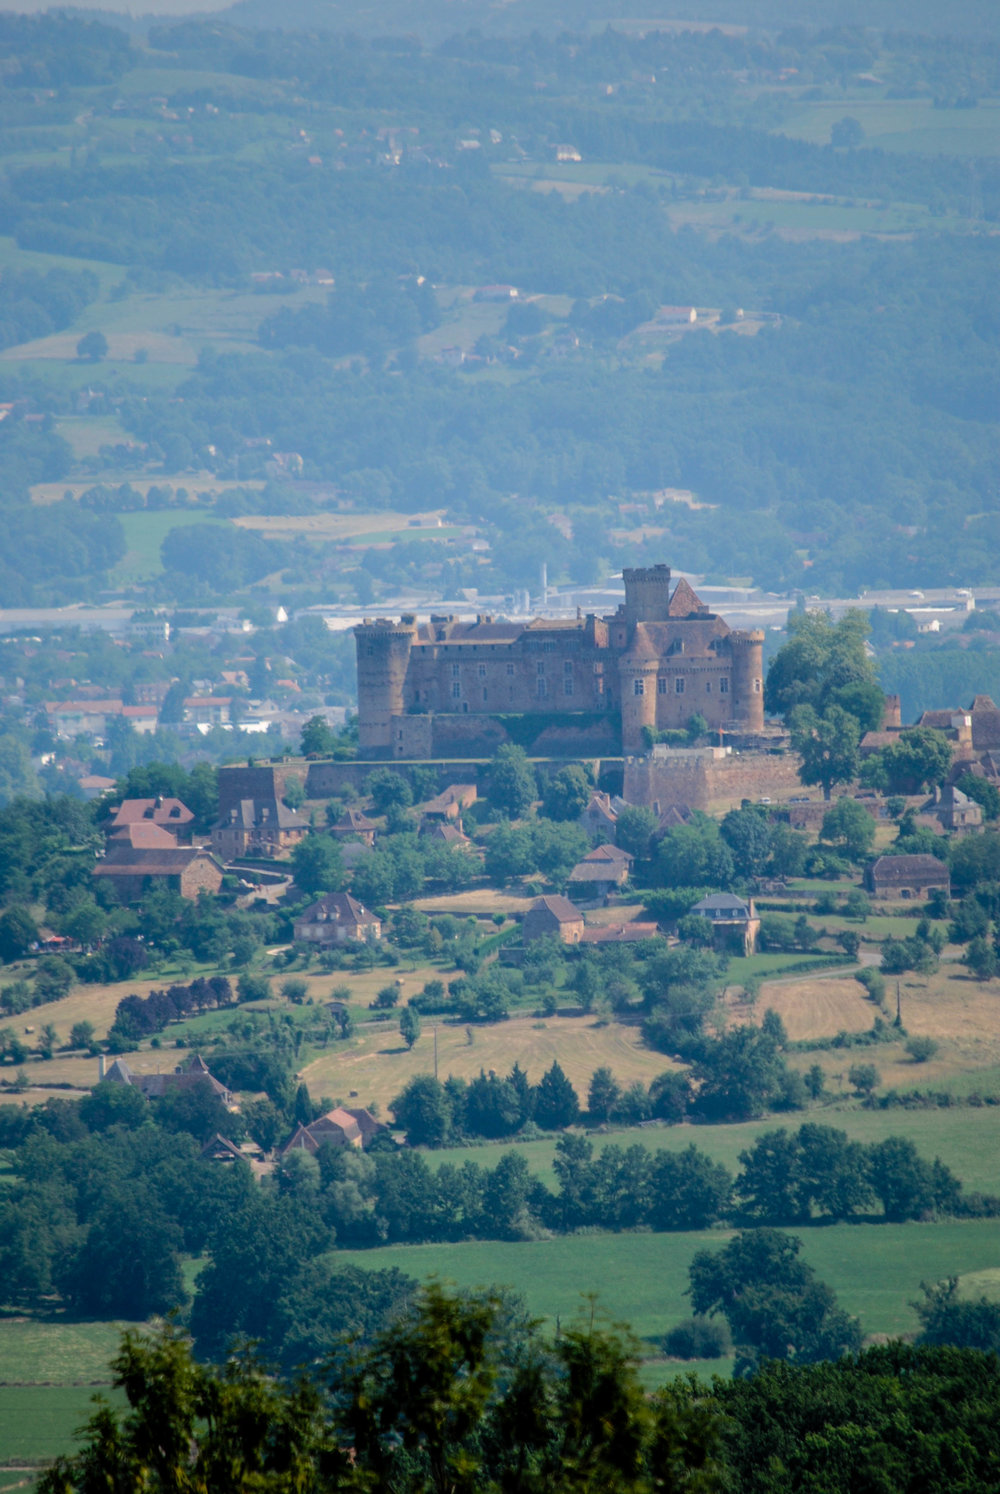 Hazy Sunshine View of Castelnau, Lot Valley, Dordogne, France